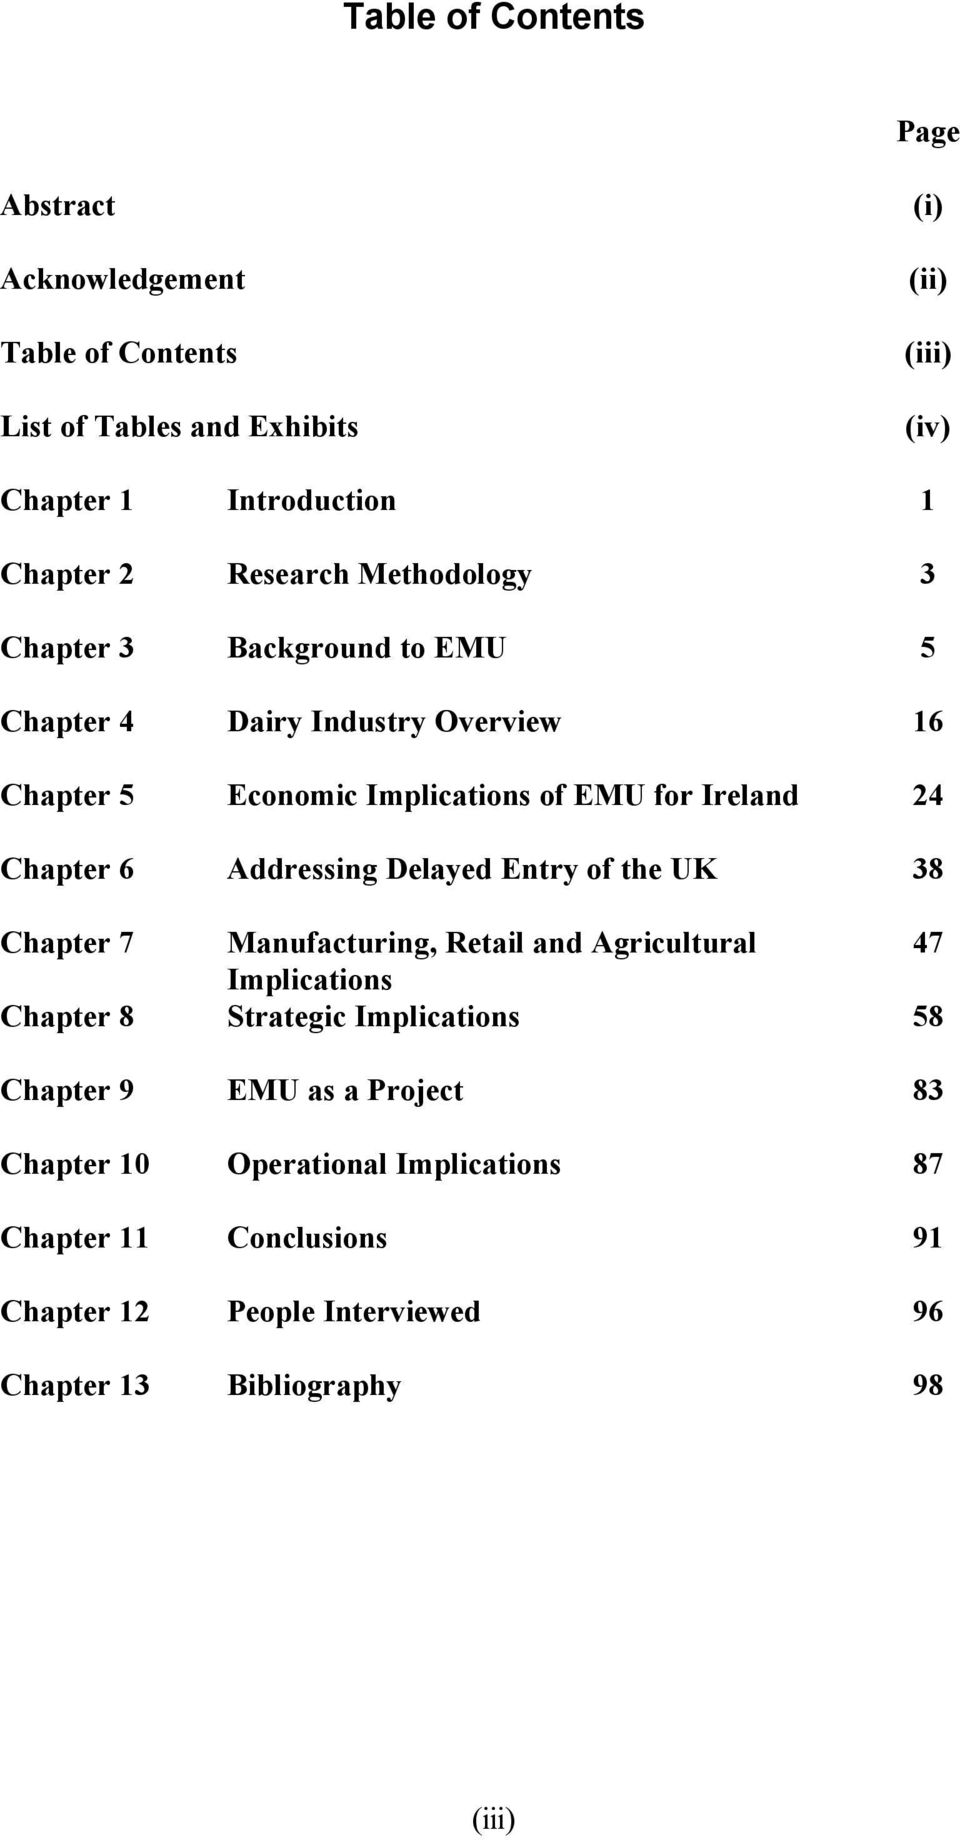 Chapter 6 Addressing Delayed Entry of the UK 38 Chapter 7 Manufacturing, Retail and Agricultural 47 Implications Chapter 8 Strategic Implications 58